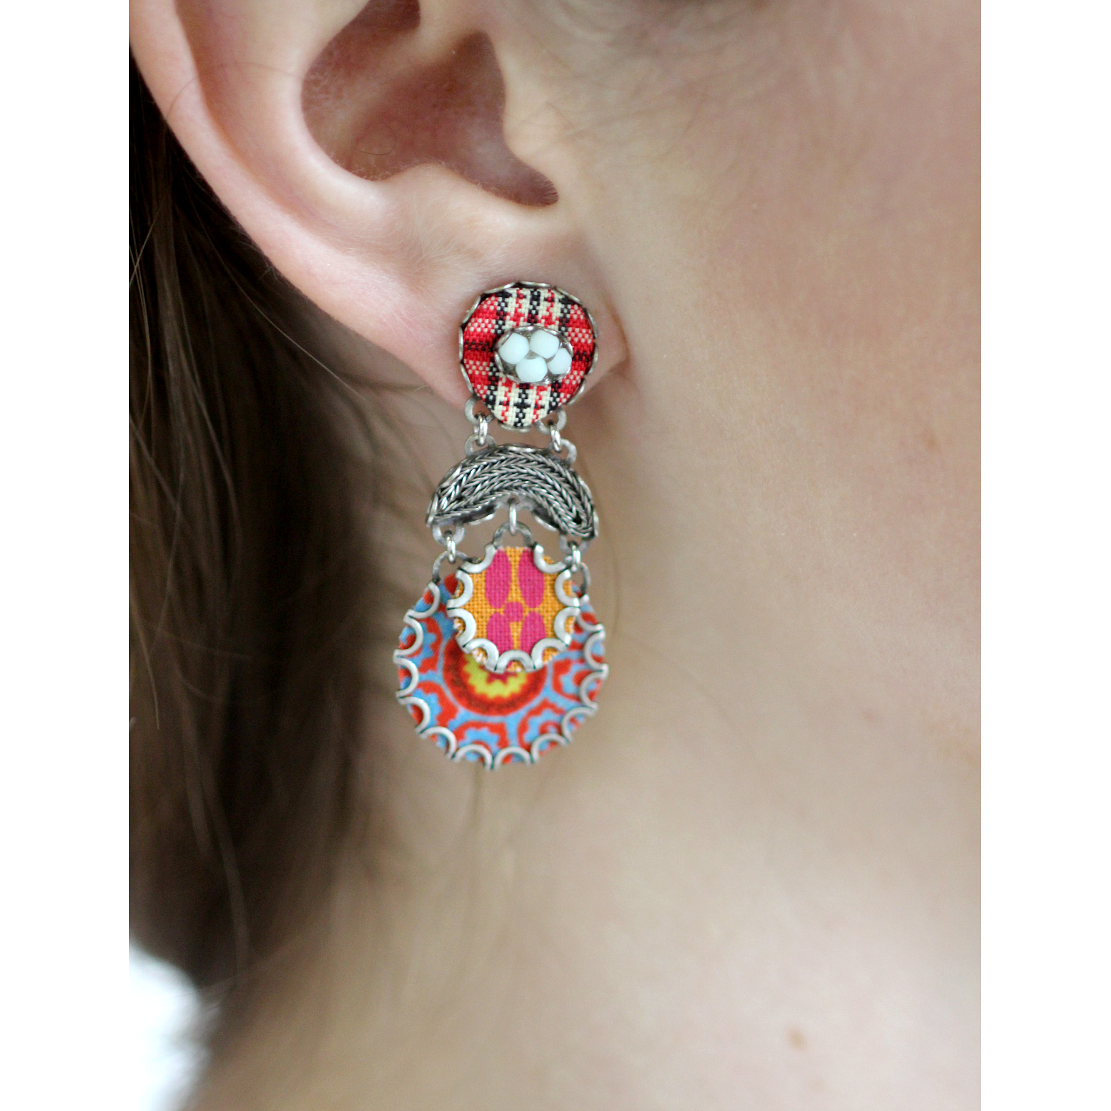 Ayala Bar Rainbow Collection Bianca Earrings - Coco and Duckie